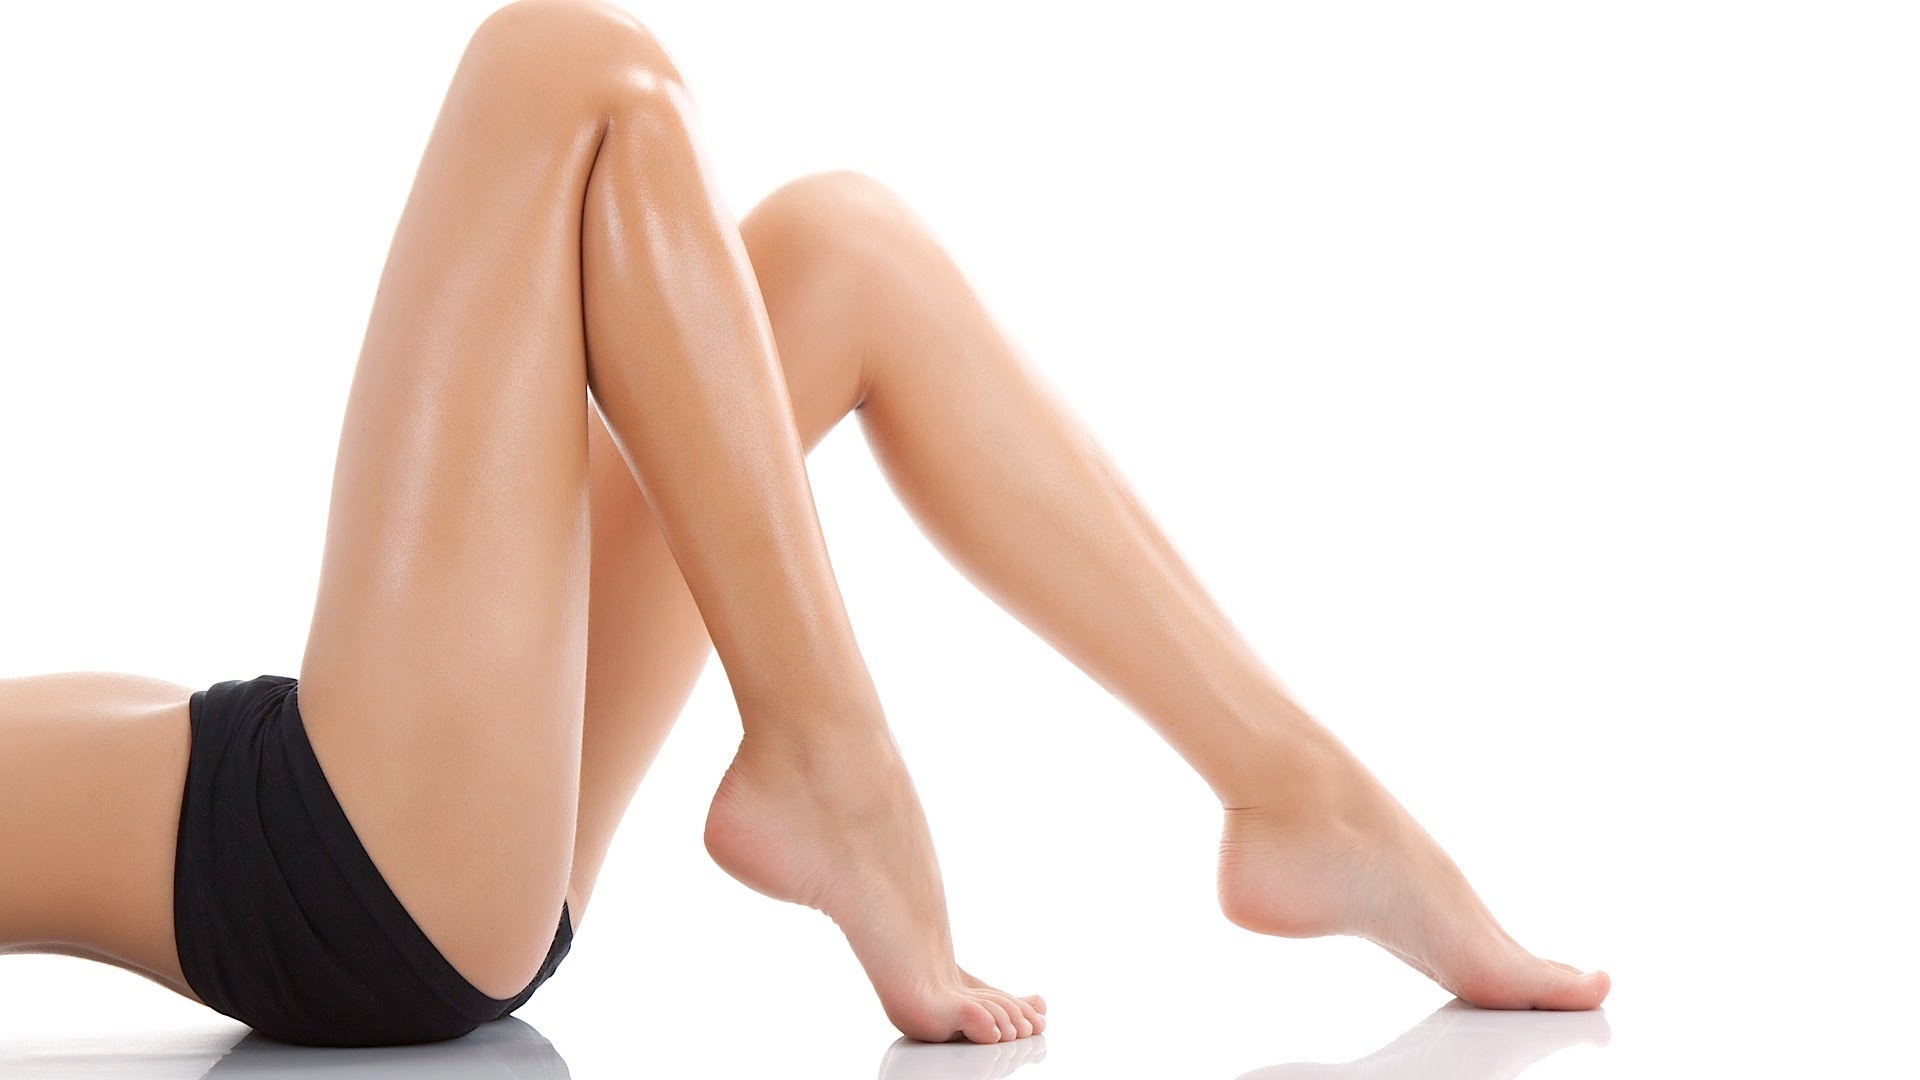 vancouver best laser hair removal service